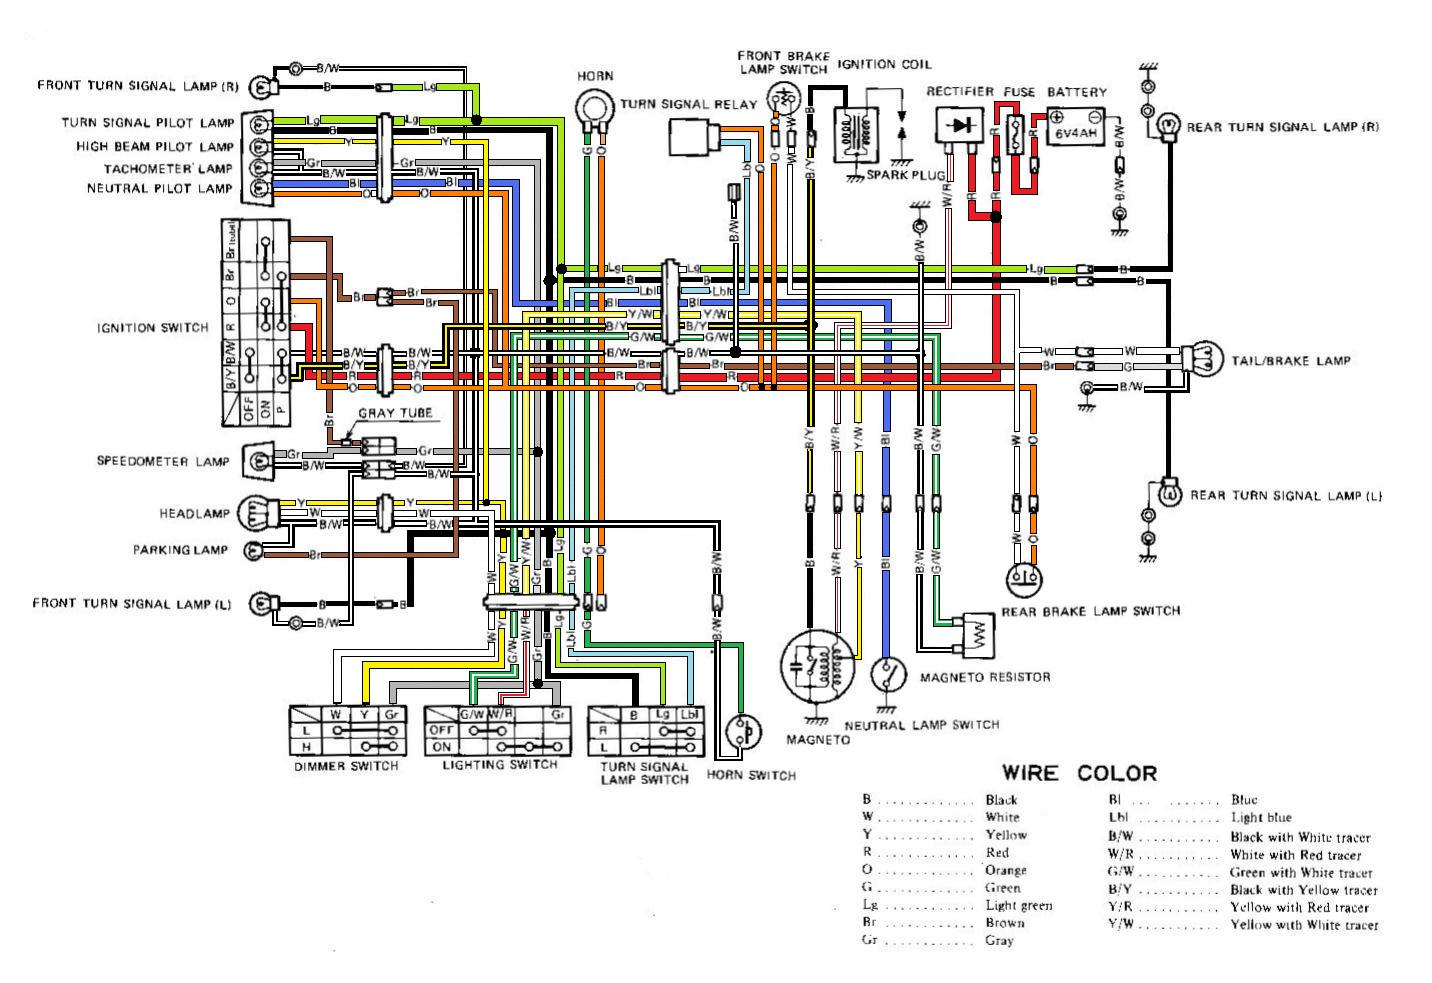 Suzuki Tf 125 Wiring Harness - Auto Electrical Wiring Diagram •